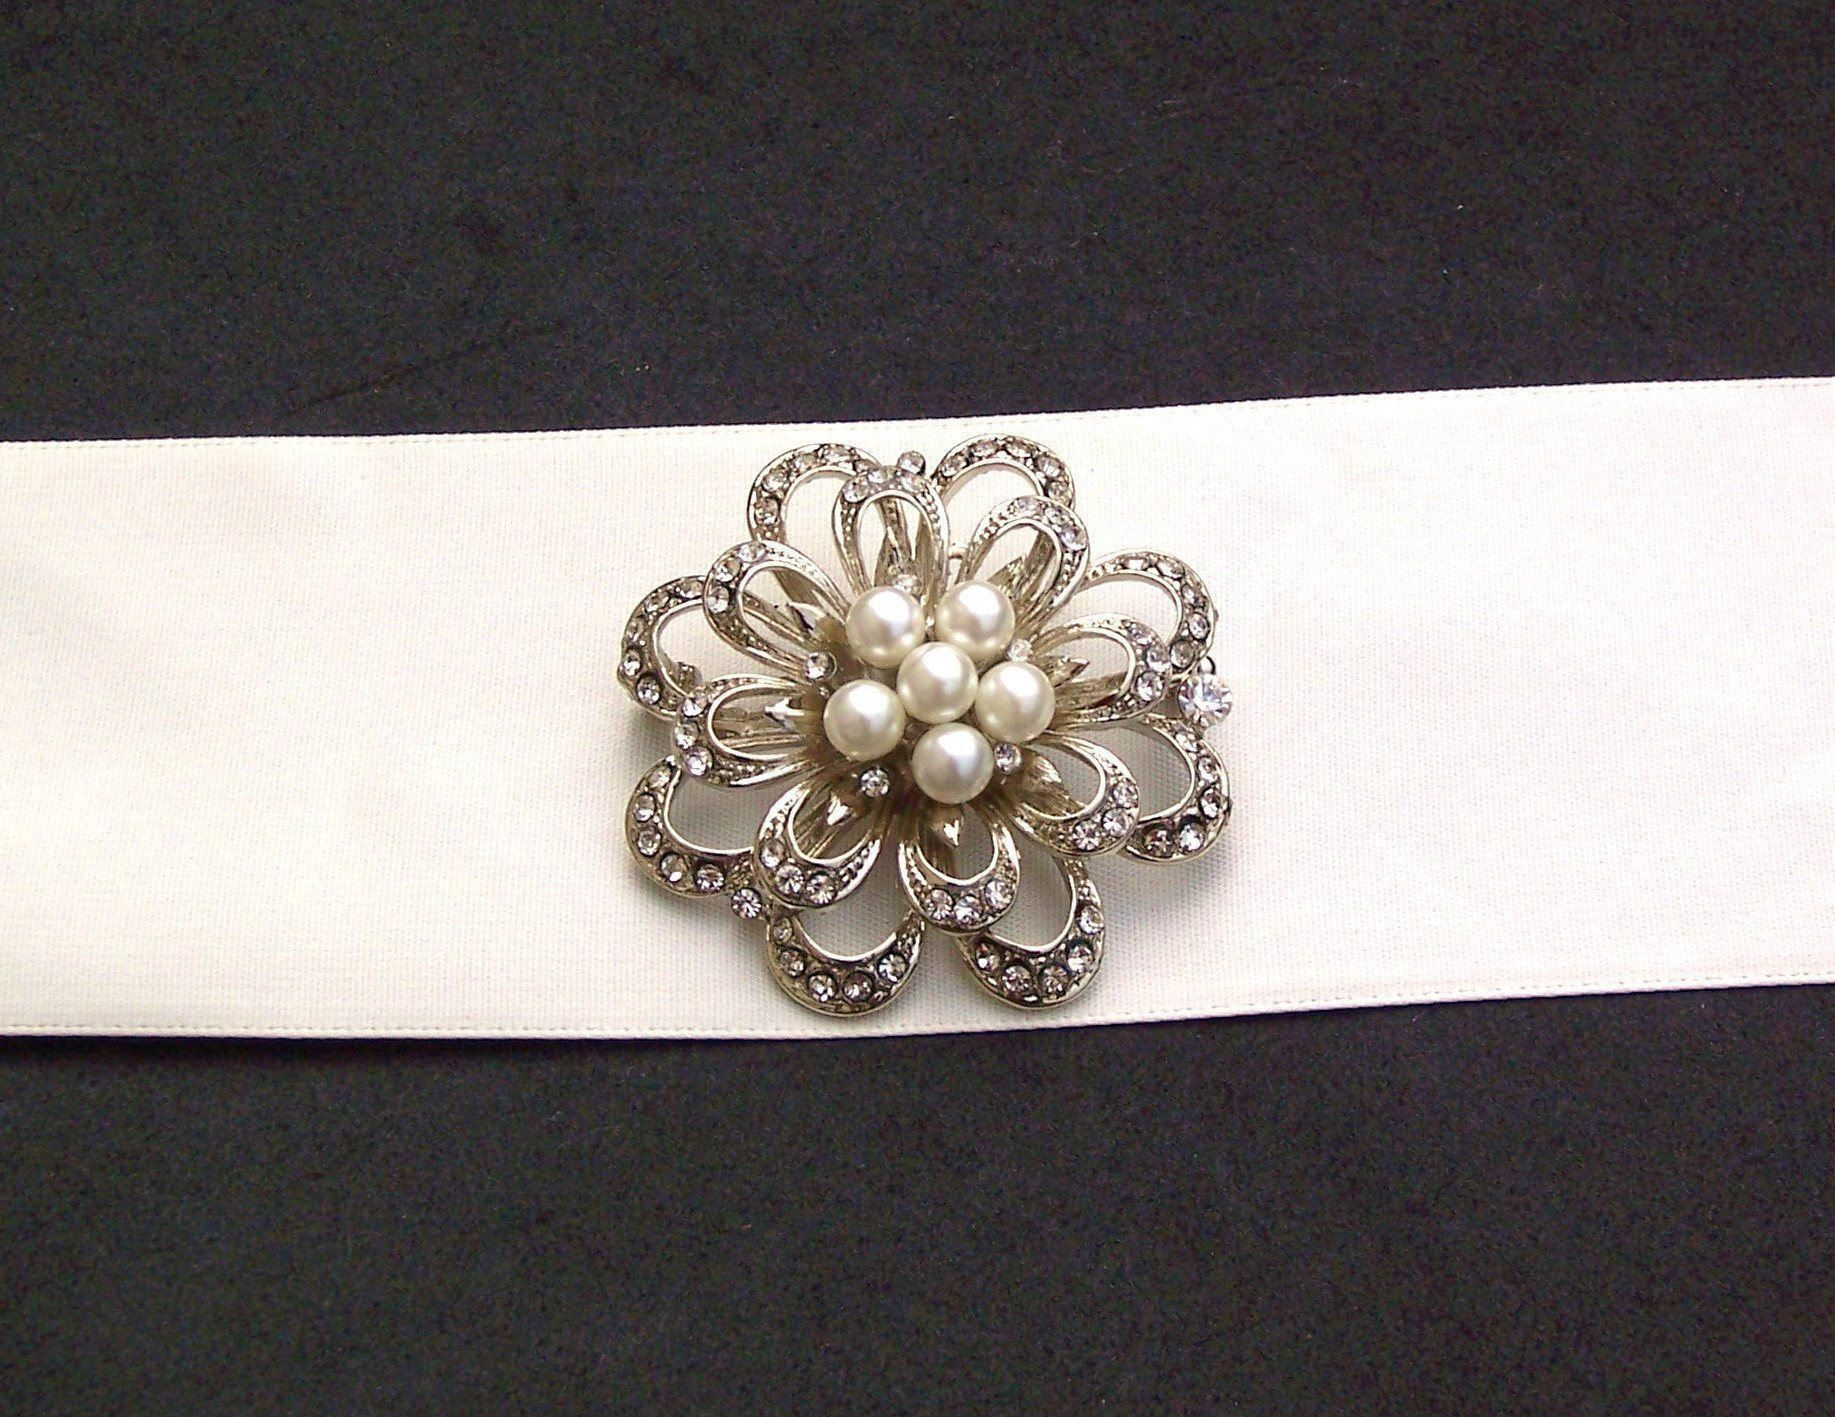 Wedding Brooches - Vintage Inspired Pearl Brooch, Danielle